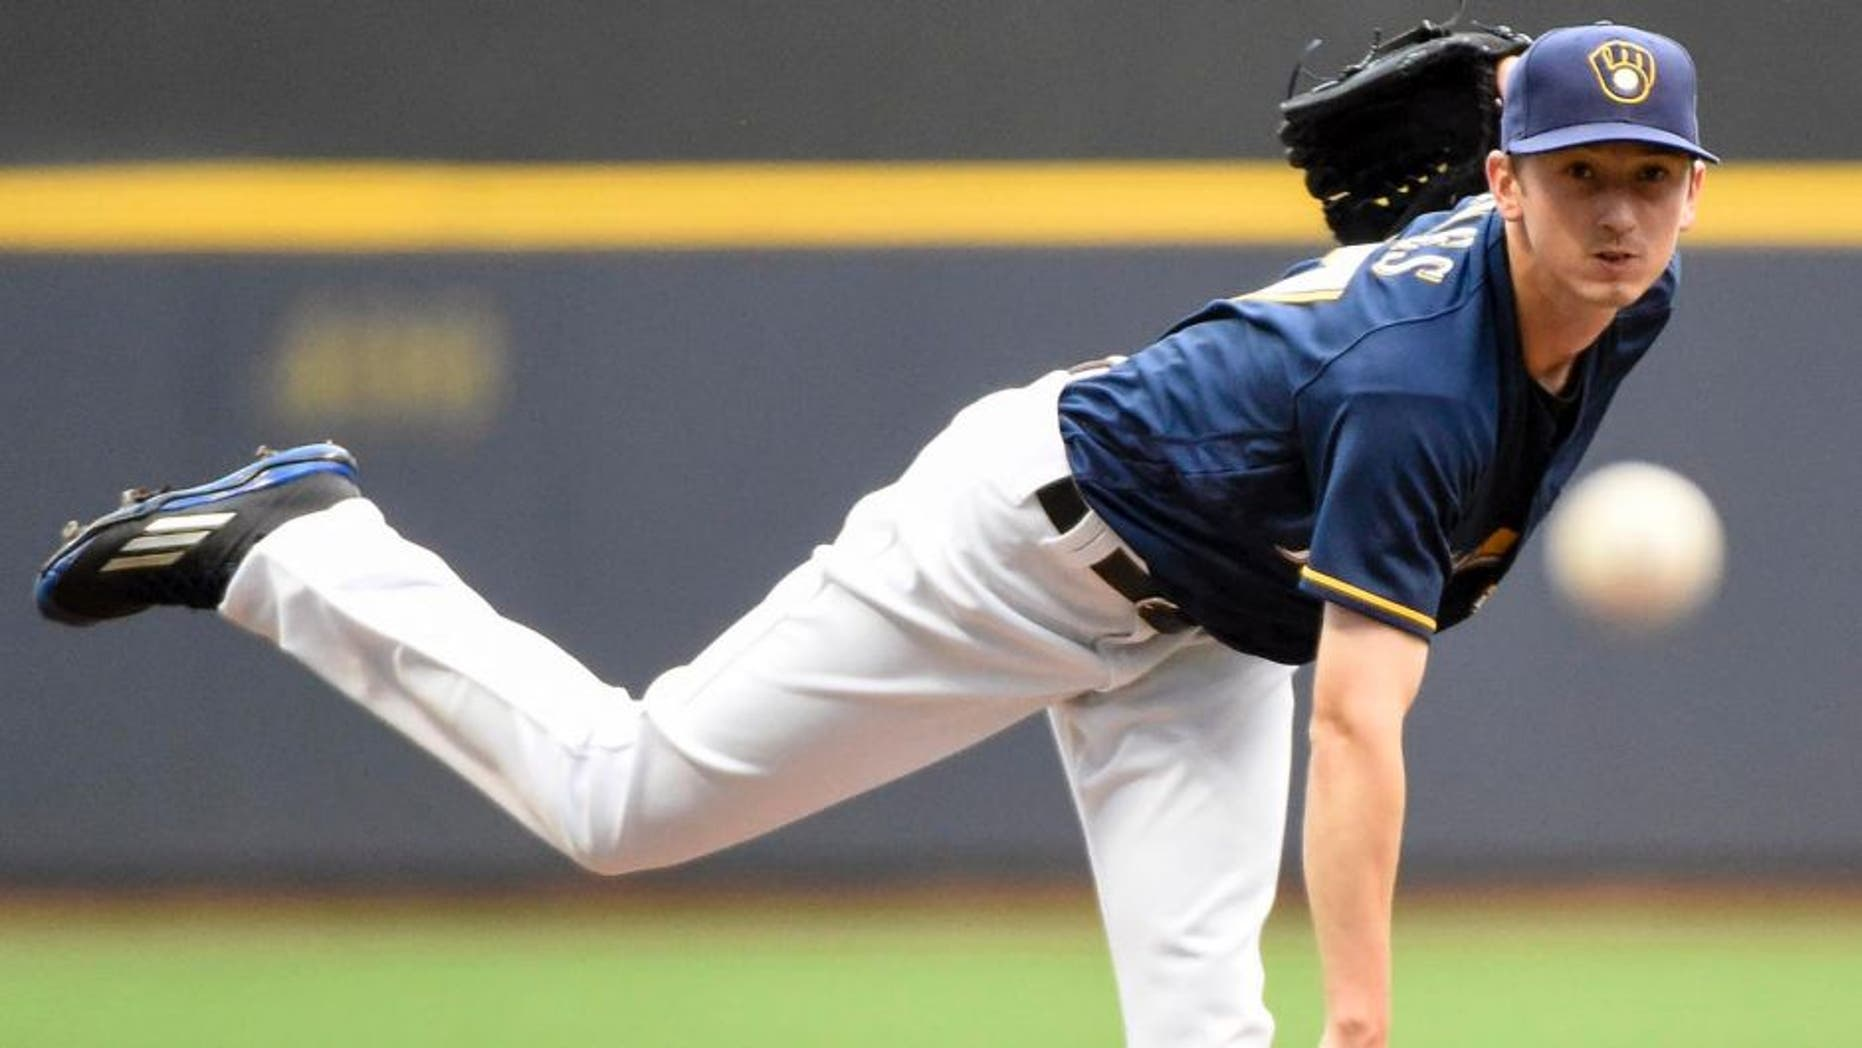 Aug 29, 2016; Milwaukee, WI, USA; Milwaukee Brewers pitcher Zach Davies throws a pitch in the first inning during the game against the St. Louis Cardinals at Miller Park. Mandatory Credit: Benny Sieu-USA TODAY Sports